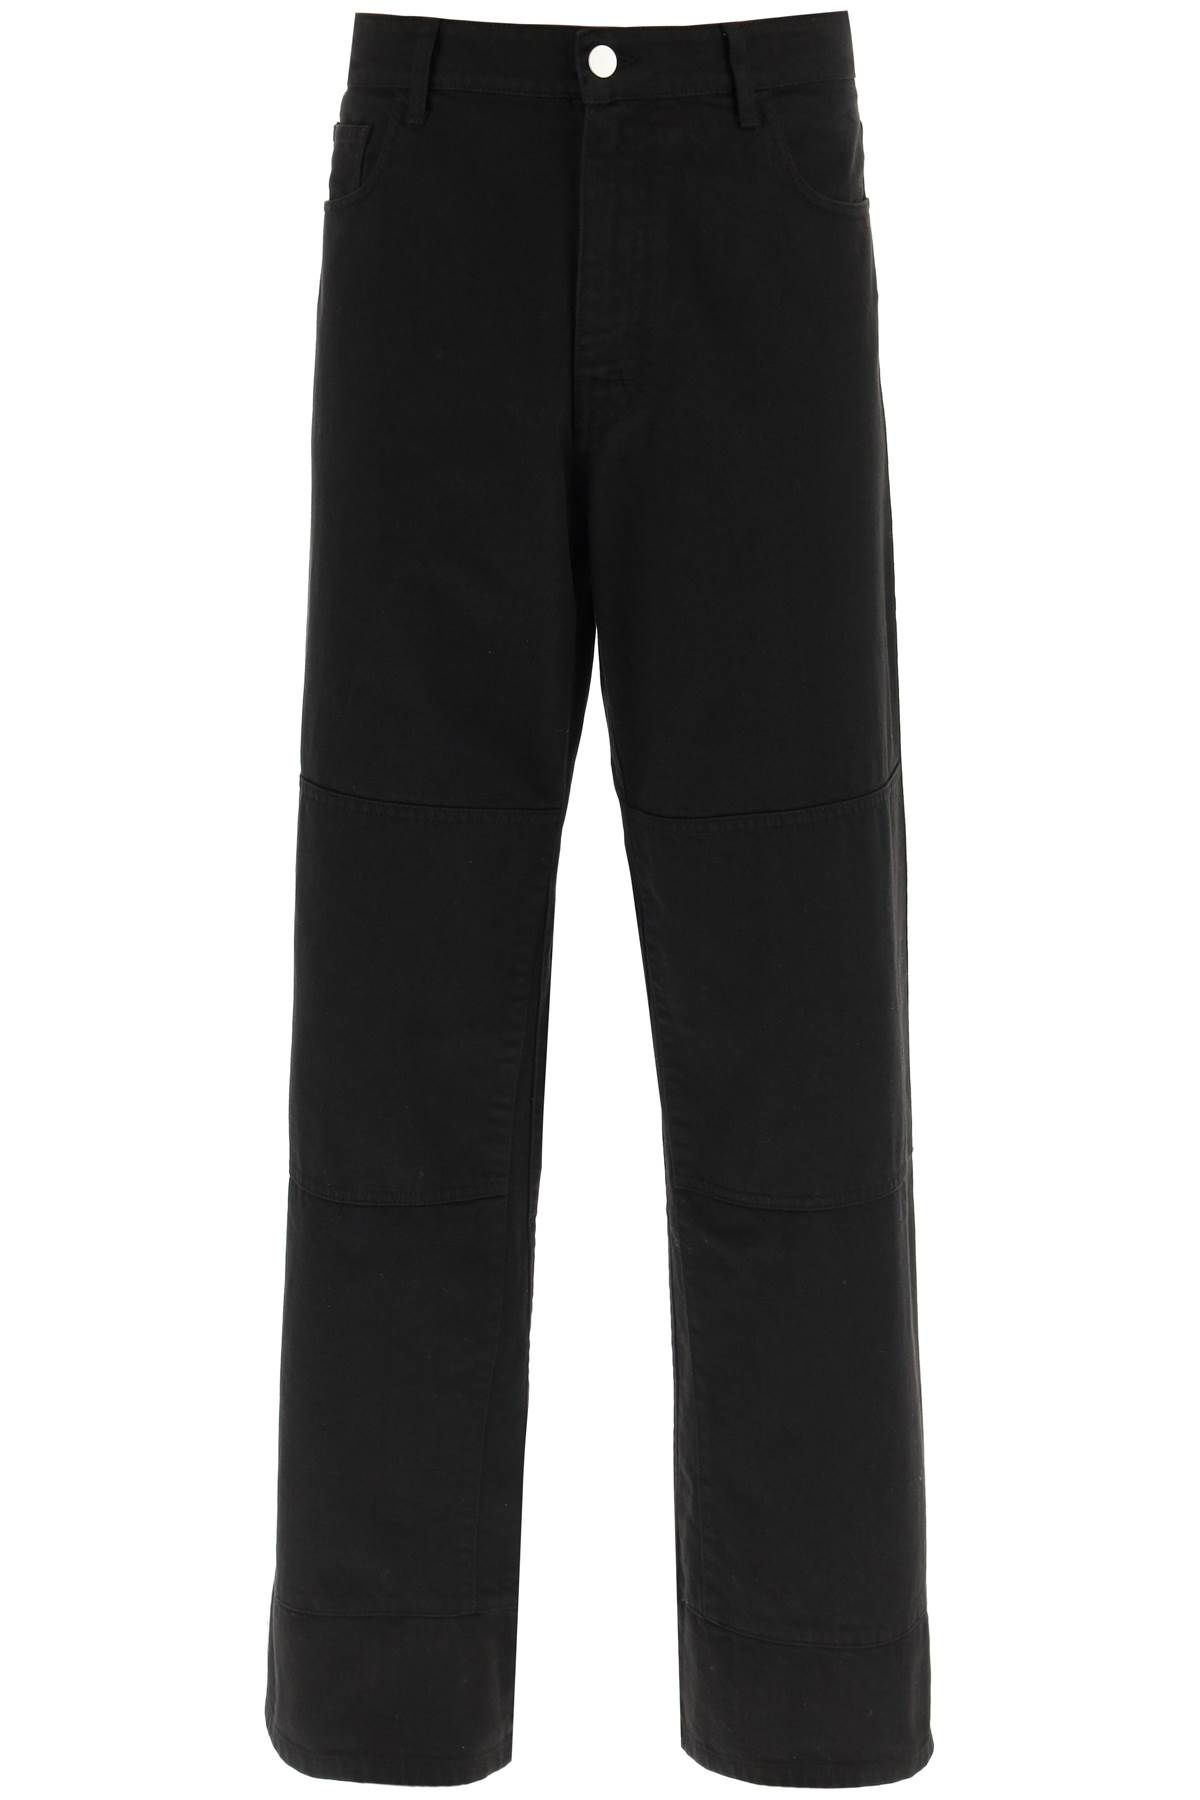 raf simons clothing men workwear jeans with knee patches